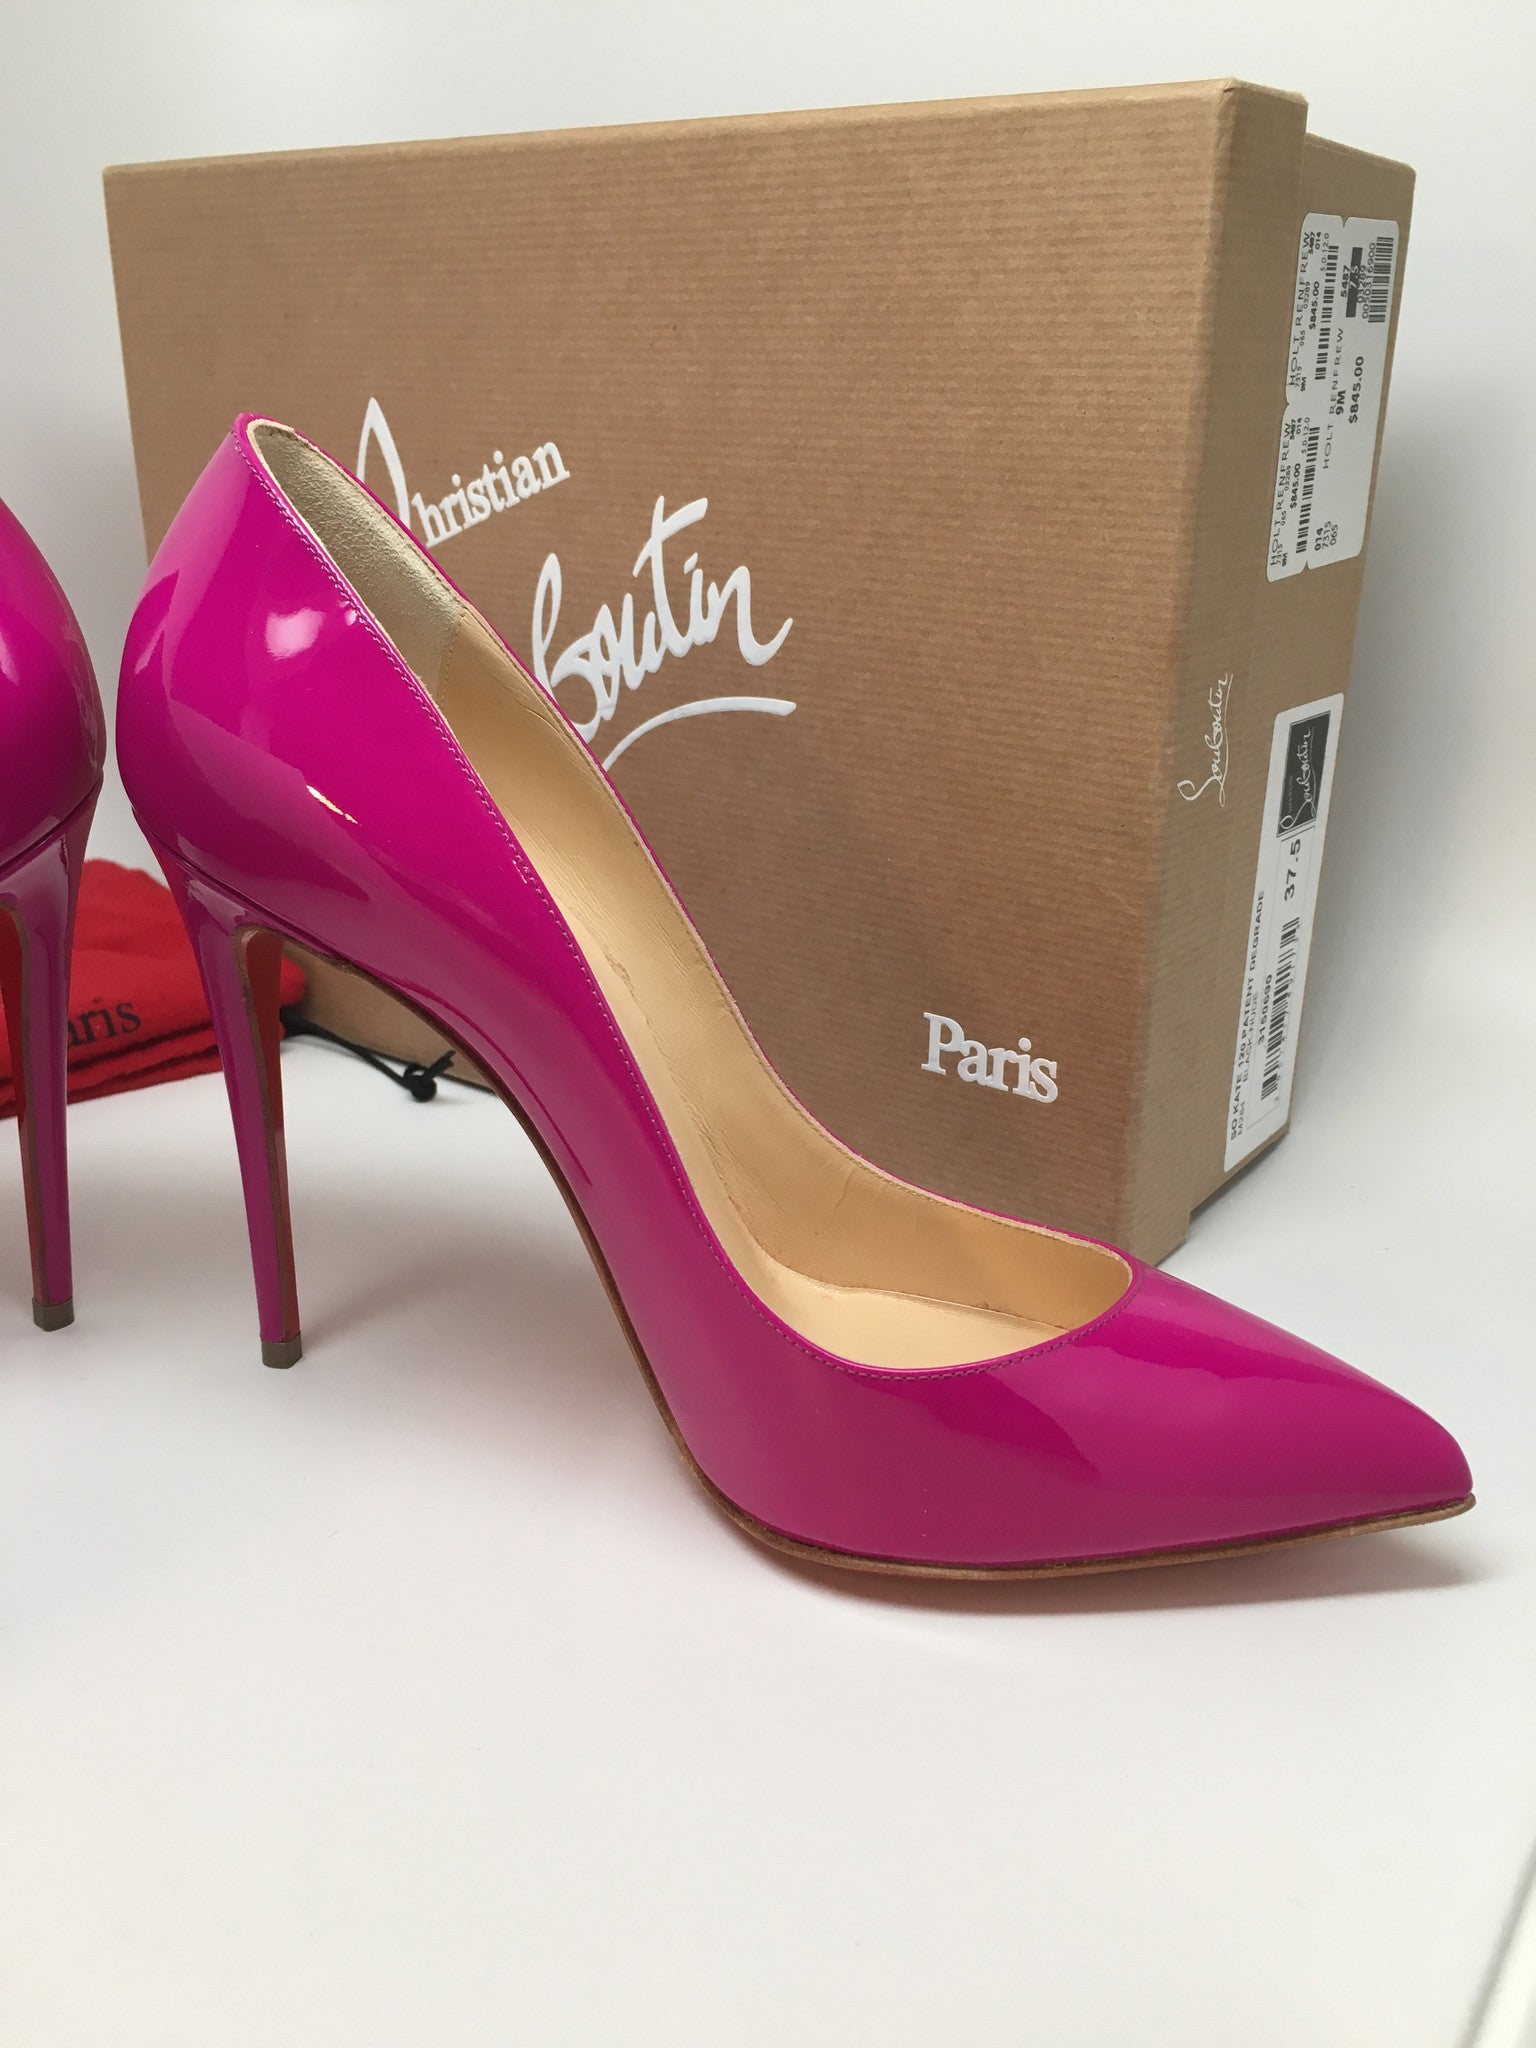 CHRISTIAN LOUBOUTIN SO KATE - PURPLE - SIZE 37.5